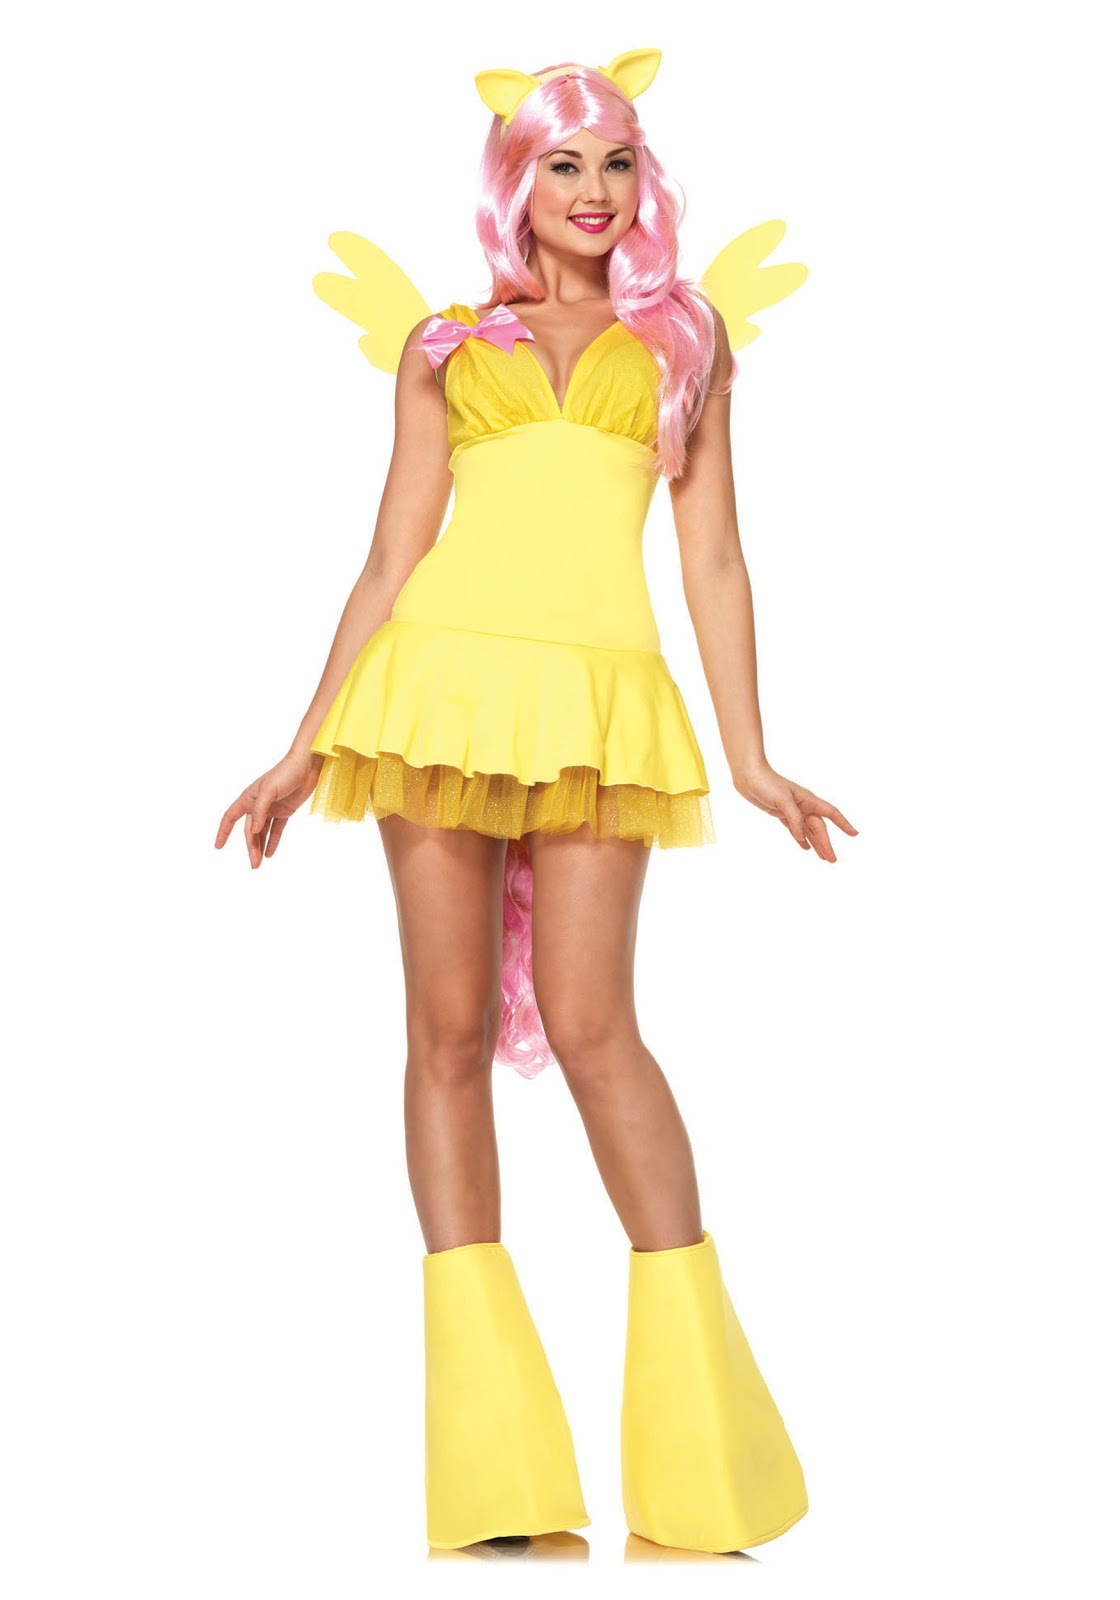 More Adult Costumes: Fluttershy, Pinkie Pie, Rainbow Dash and Twilight Sparkle - MLP Merch